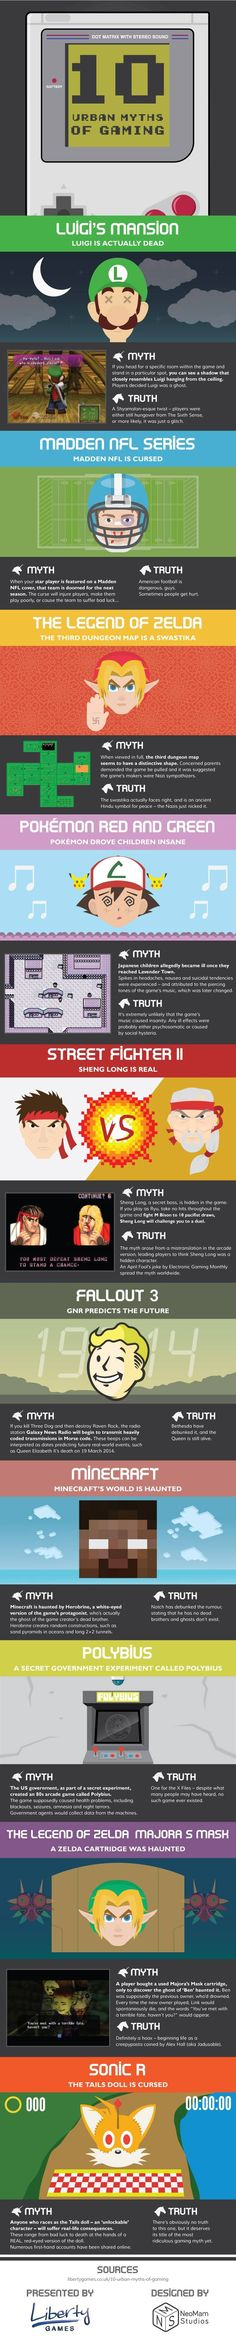 10 Urban Myths of Gaming   #infographic #Games #Myths